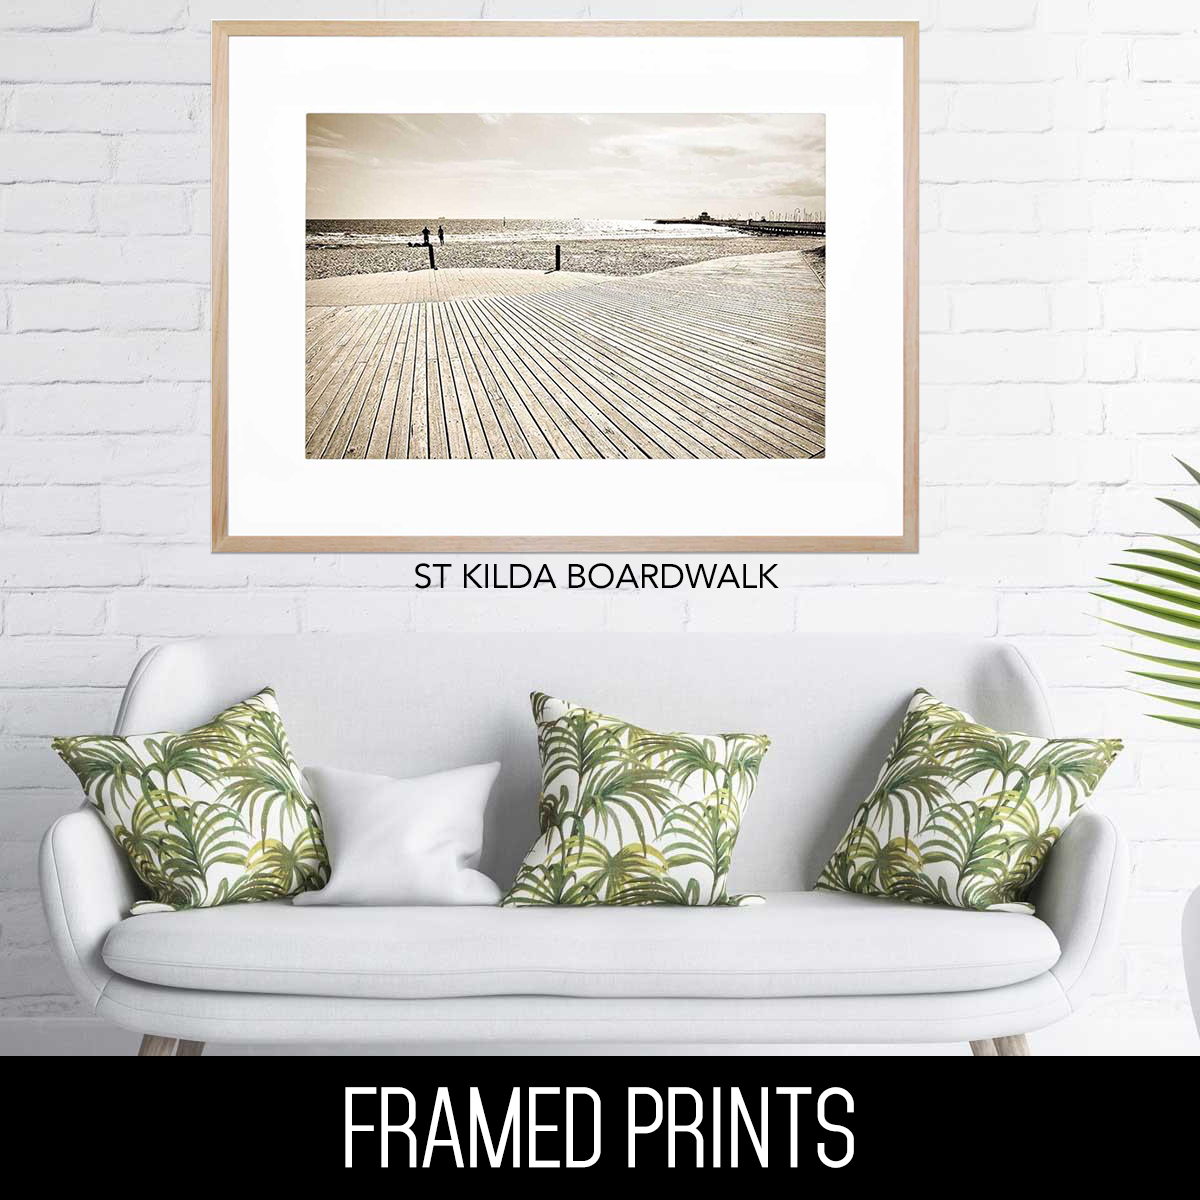 Shop our range of artworks and furnishings perfect for interior designers and home decorators